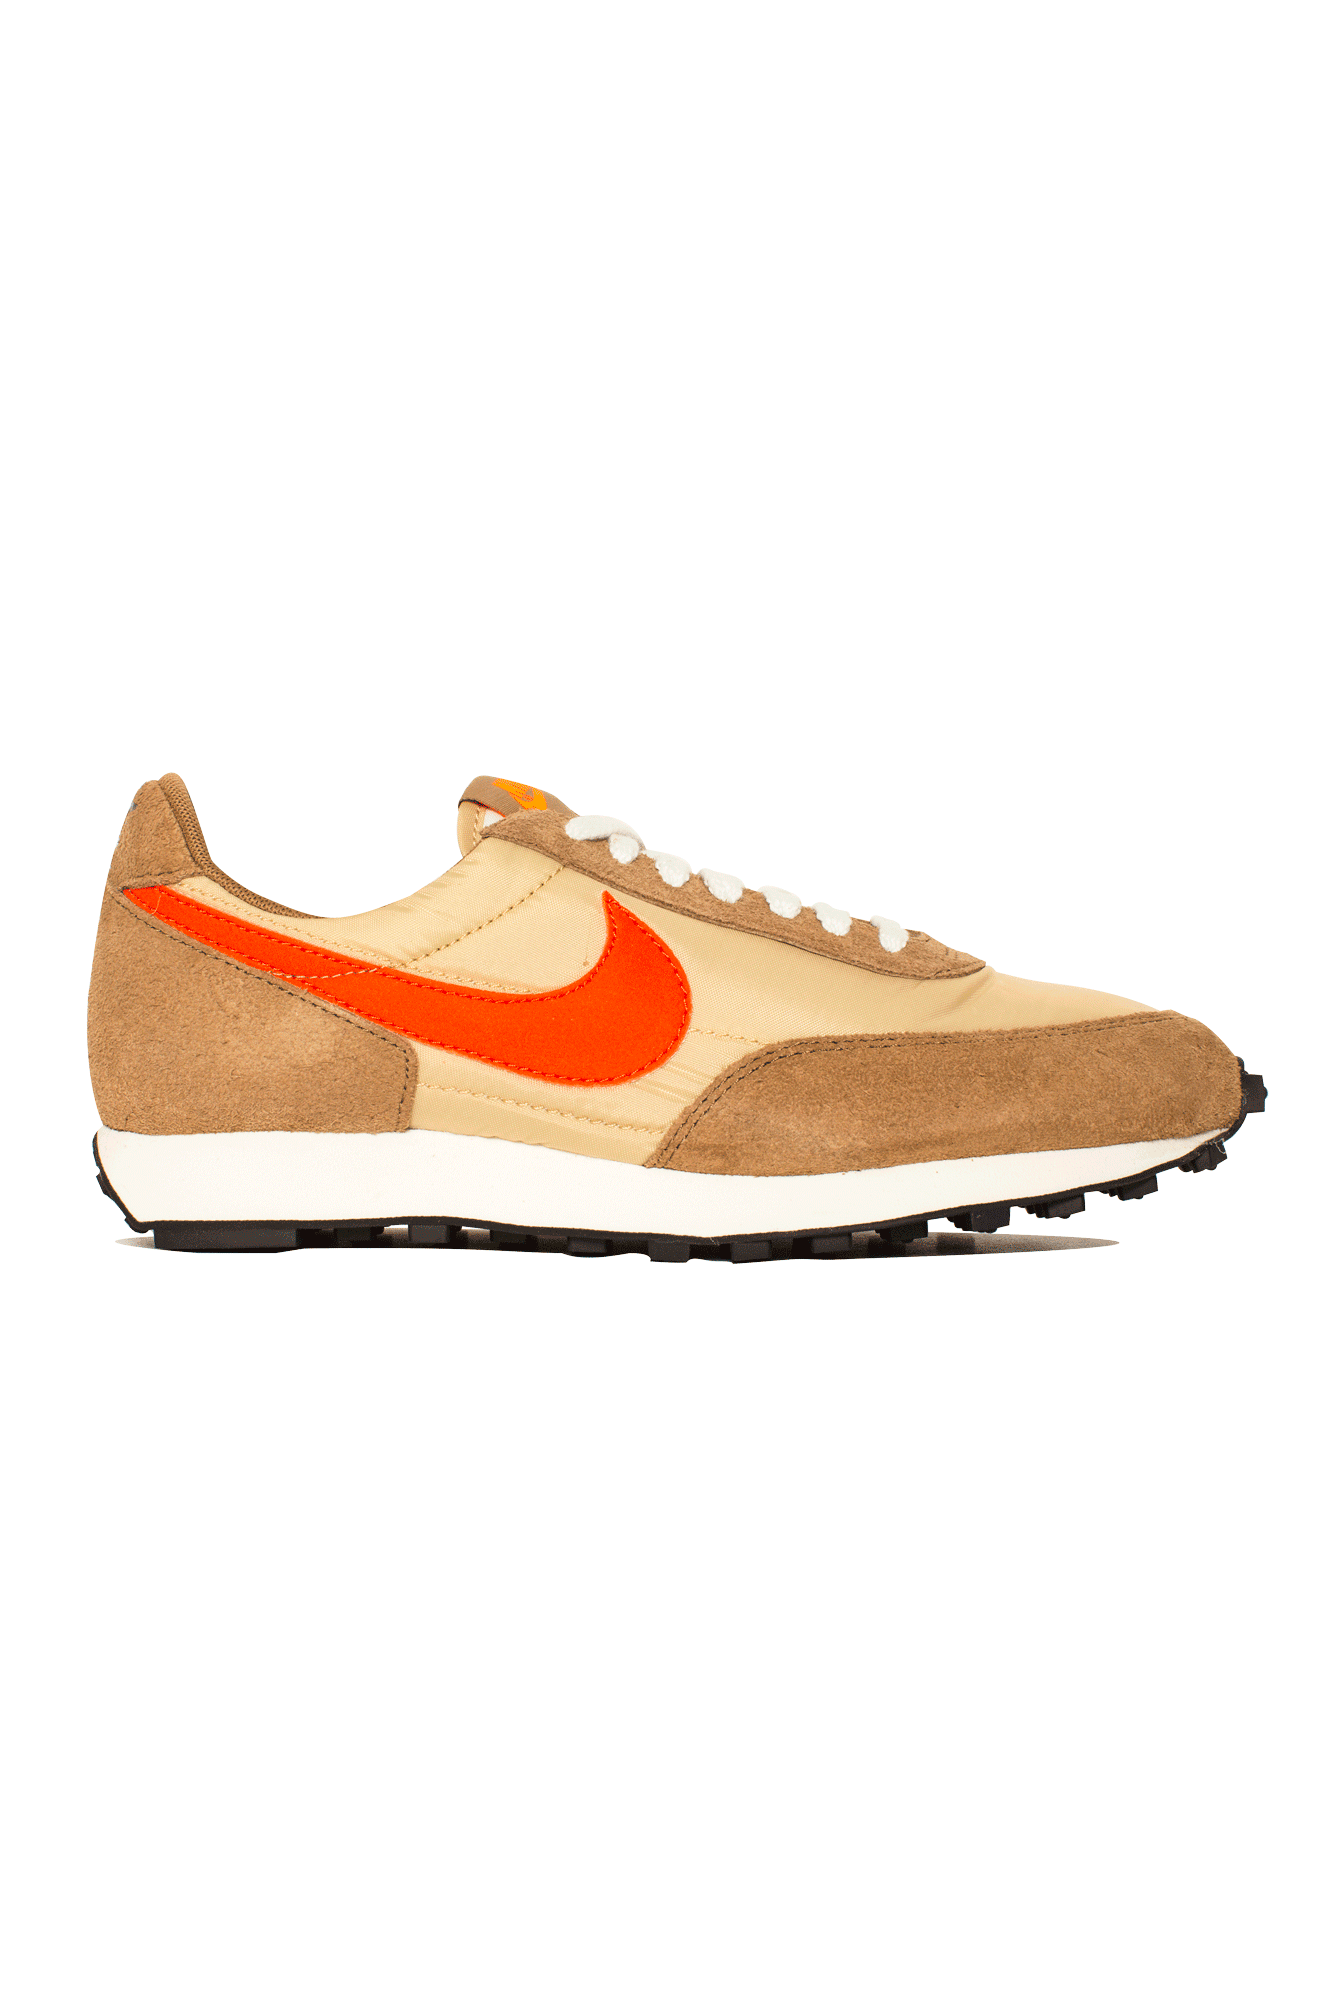 Nike Sneakers Daybreak SP Brown BV7725-#000#700#7 - One Block Down